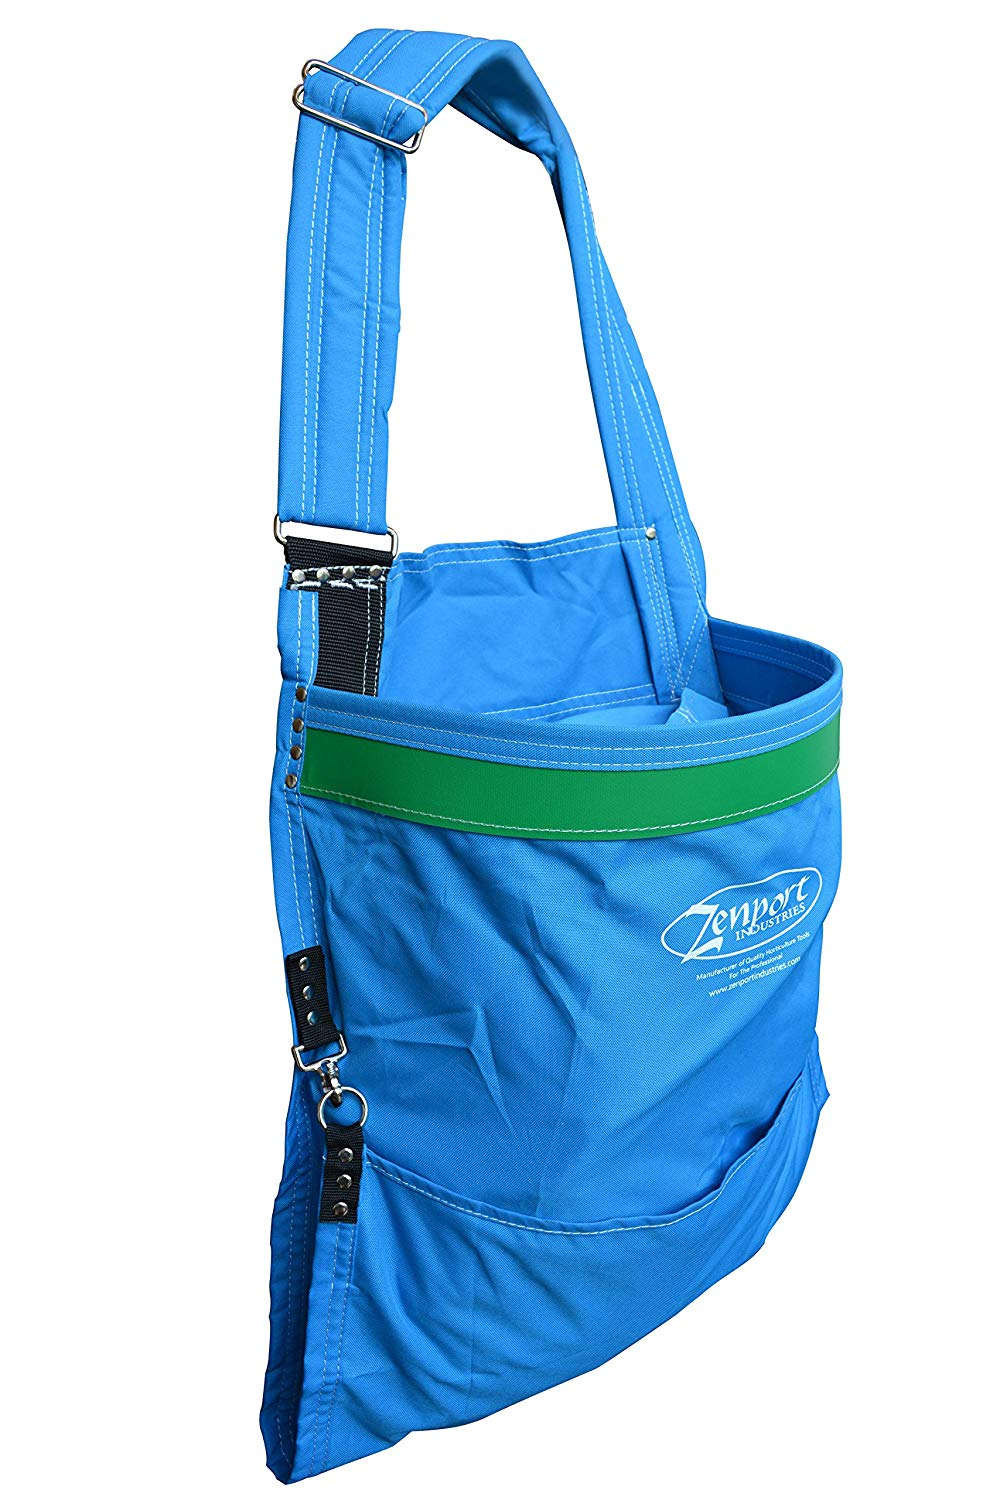 Zenport Picking Bag AG412 AgriKon 65-Pound Sling Soft Shell Harvest Fruit Pear/Apple Picking Bag